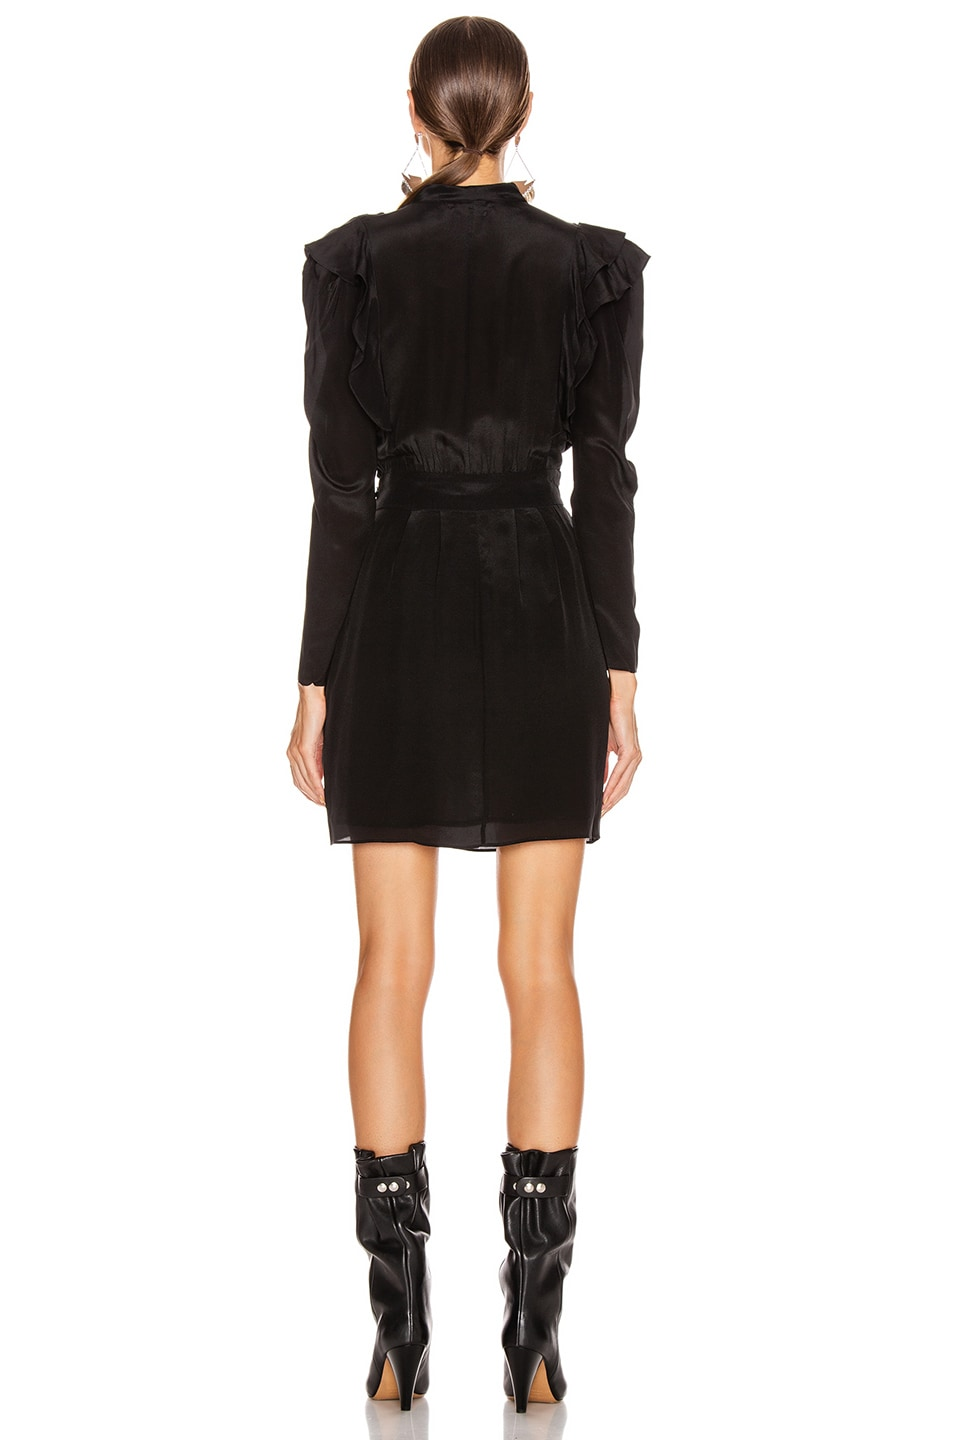 Image 4 of Isabel Marant Etoile Yoana Dress in Black